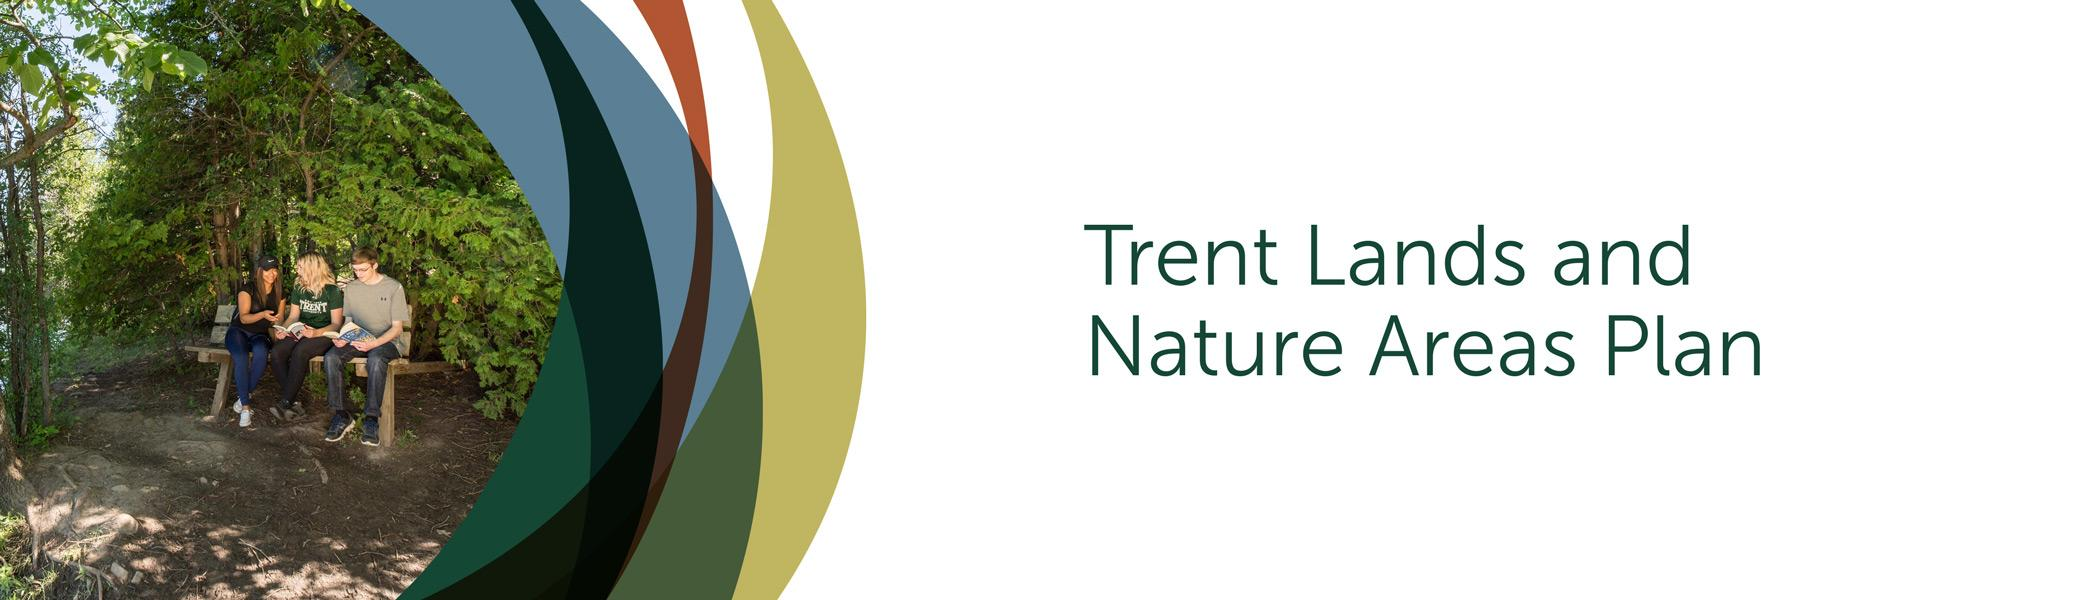 Have Your Say: Trent Lands and Nature Areas Plan Update